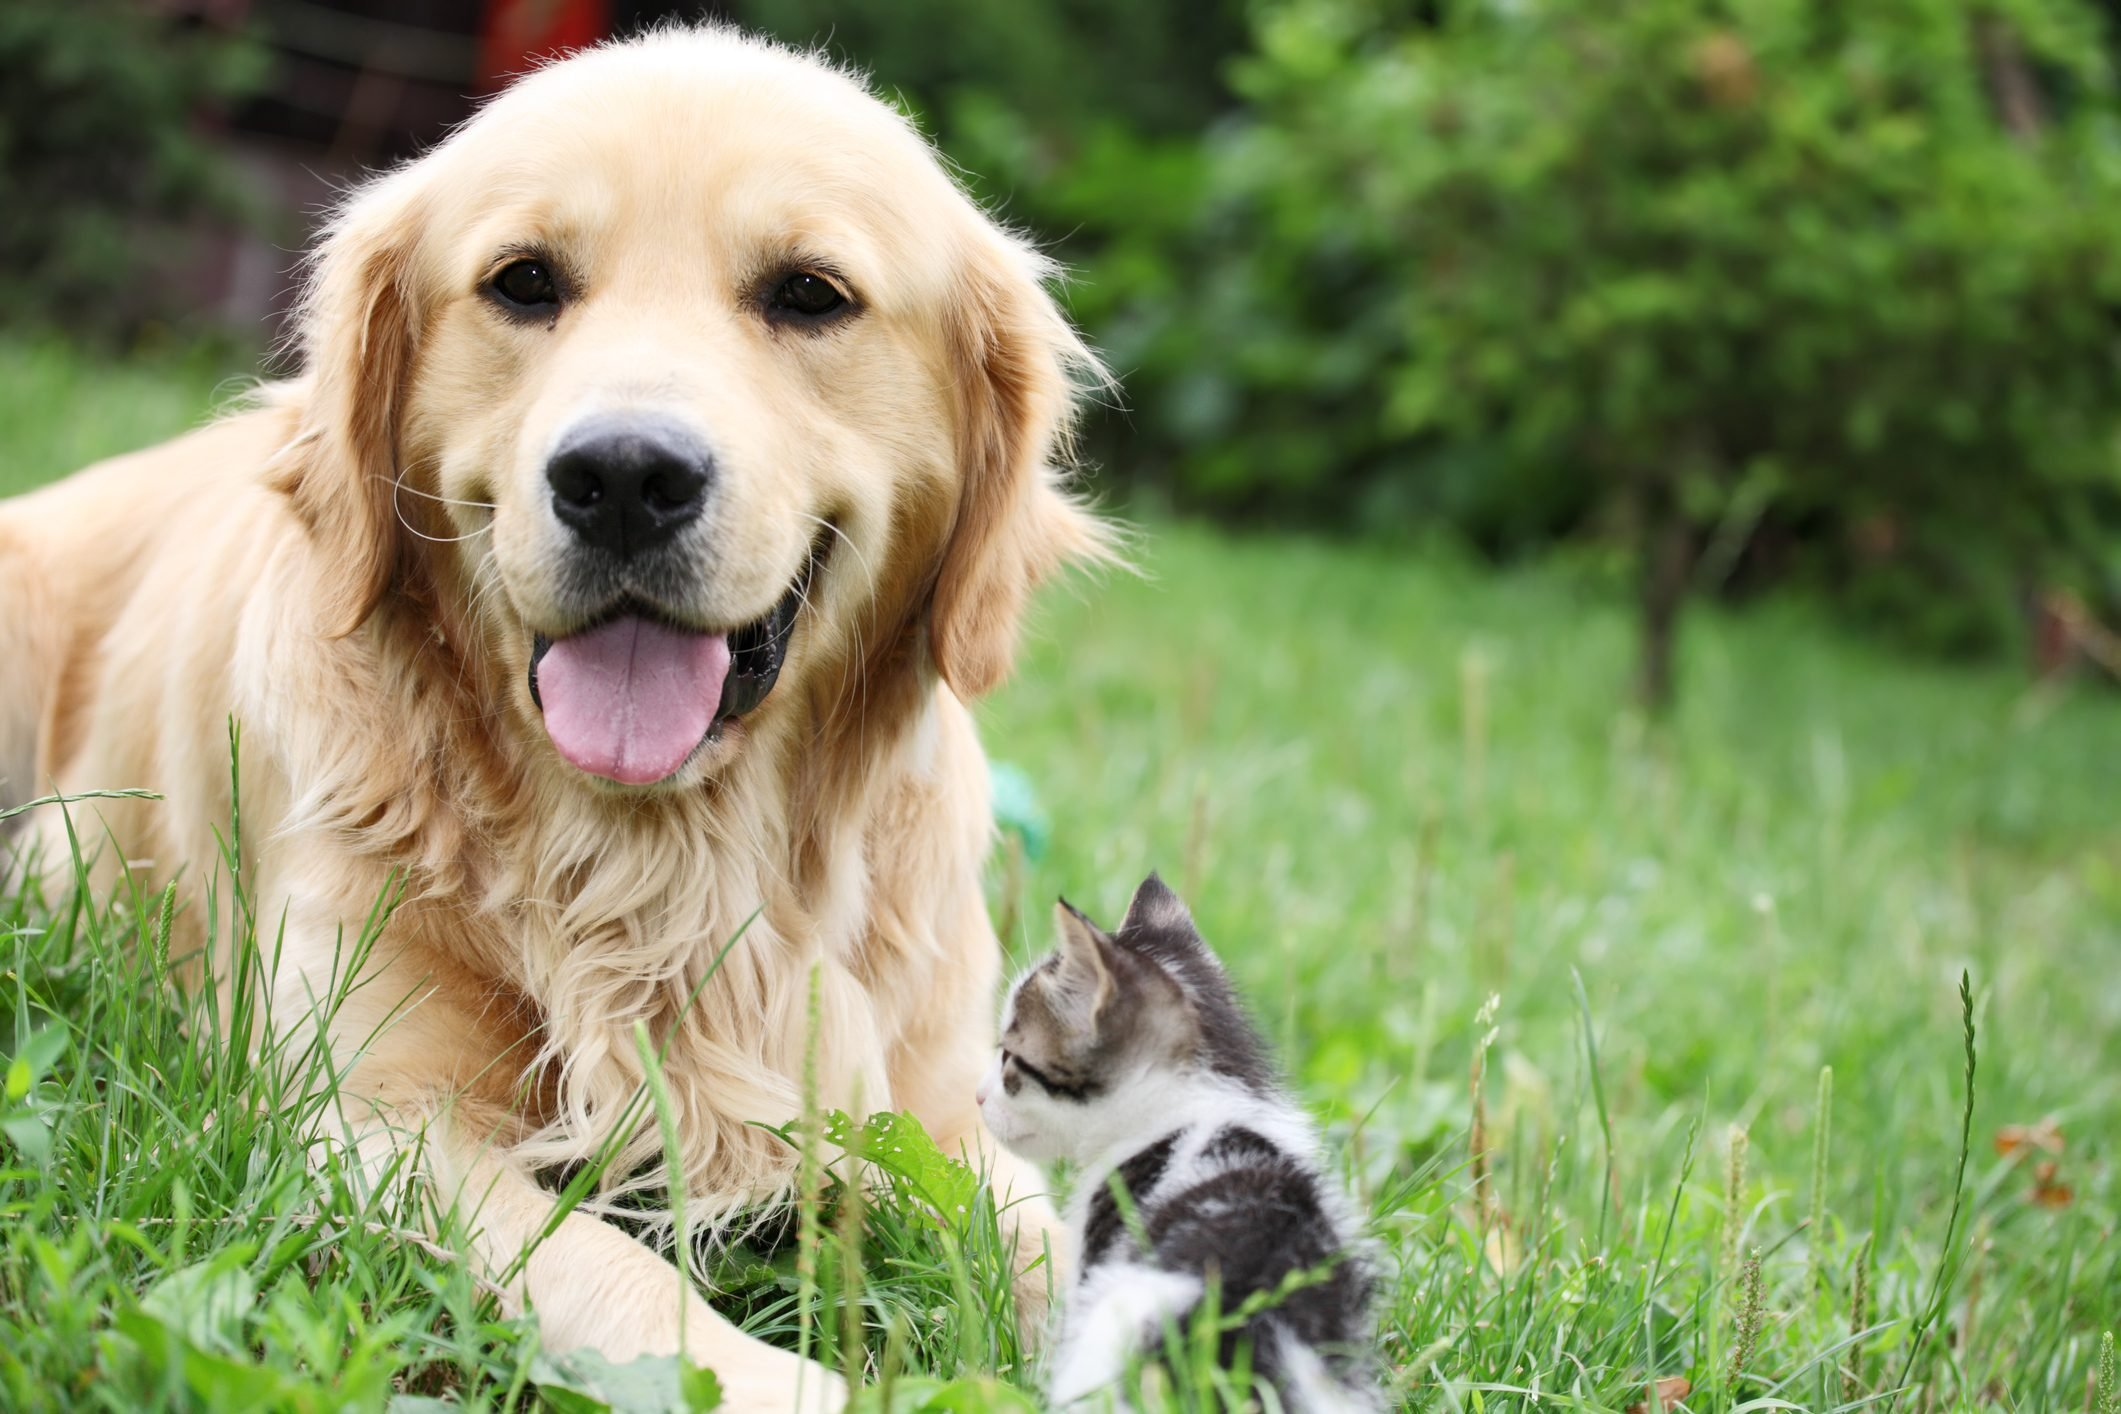 This fluffy Golden Retriever with his tiny friend